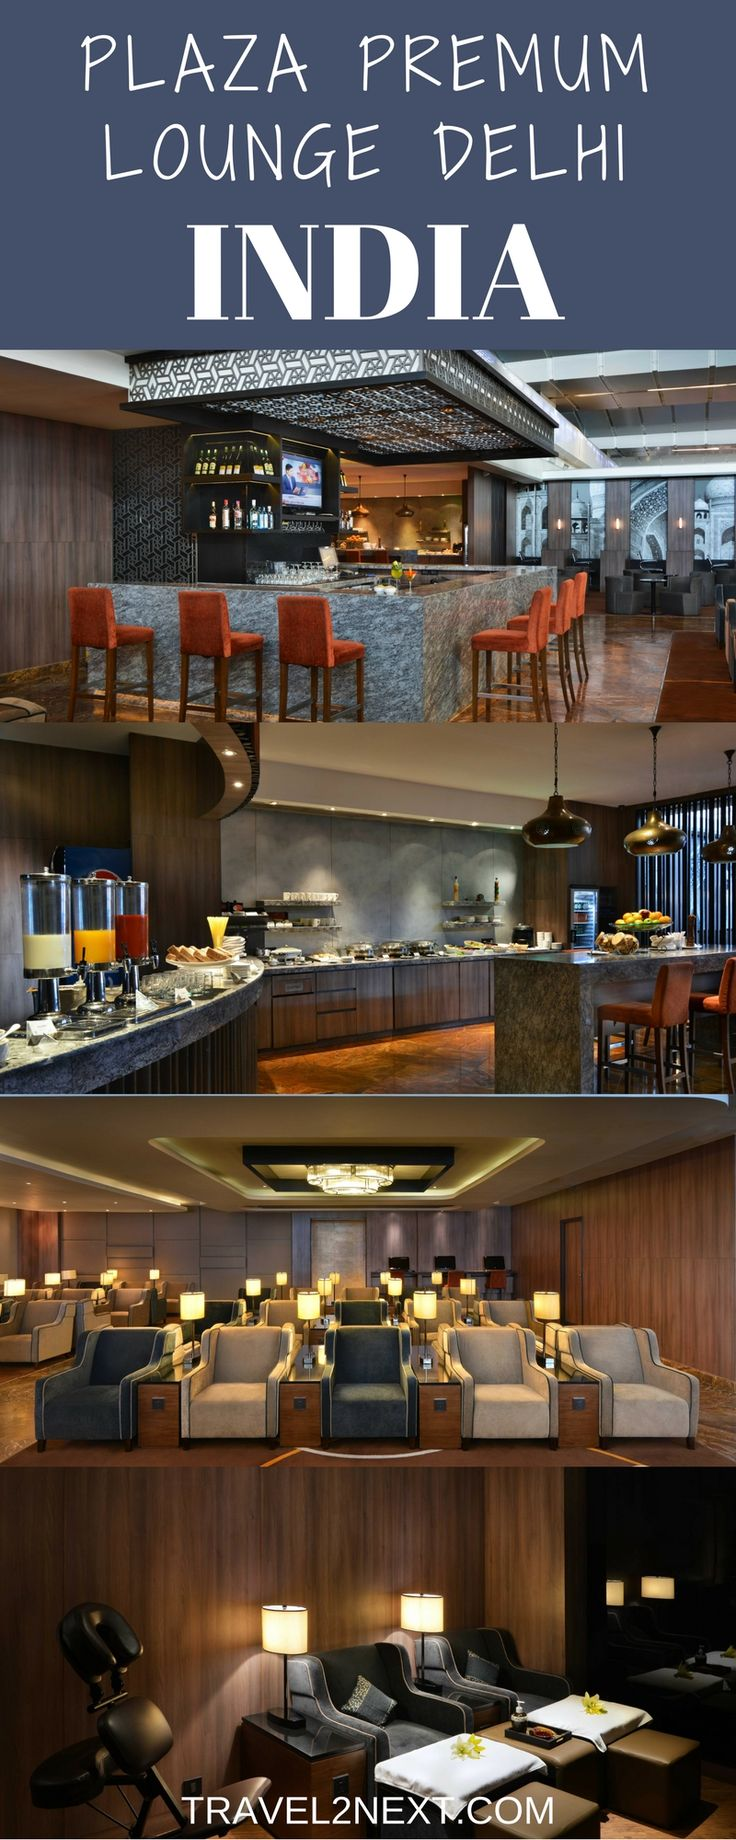 Plaza Premium Lounge Delhi in India. Have you ever felt jealous ofBusiness Class passengerswho have access to Airport Lounges where they can relax, have drinks and taste special morsels prepared just for them?